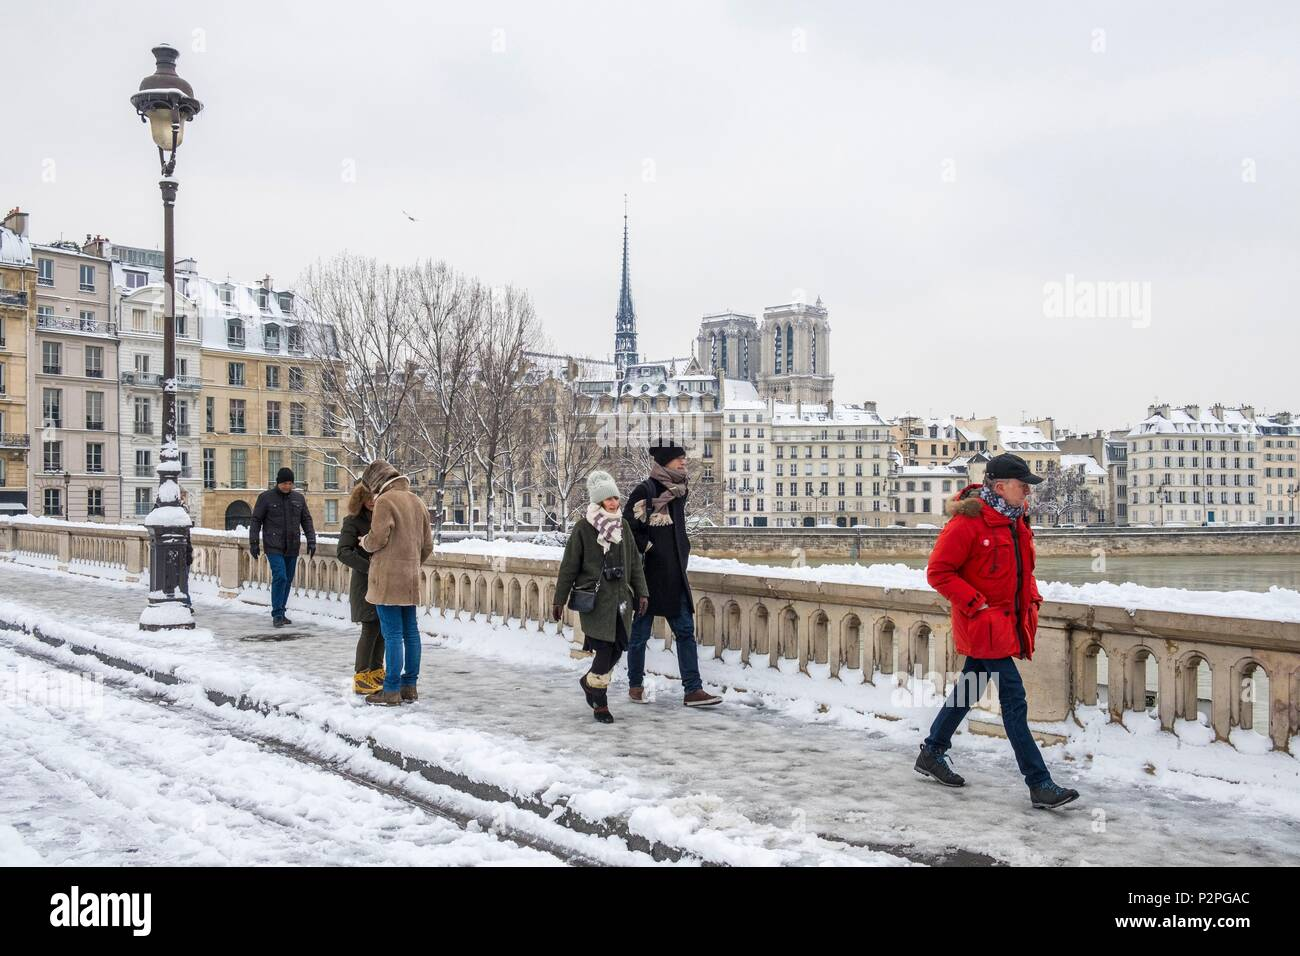 France, Paris, area listed as World Heritage by UNESCO, January 2018 flood, Louis Philippe bridge, Ile de la Cite island with Notre Dame cathedral, snowfalls on 07/02/2018 - Stock Image